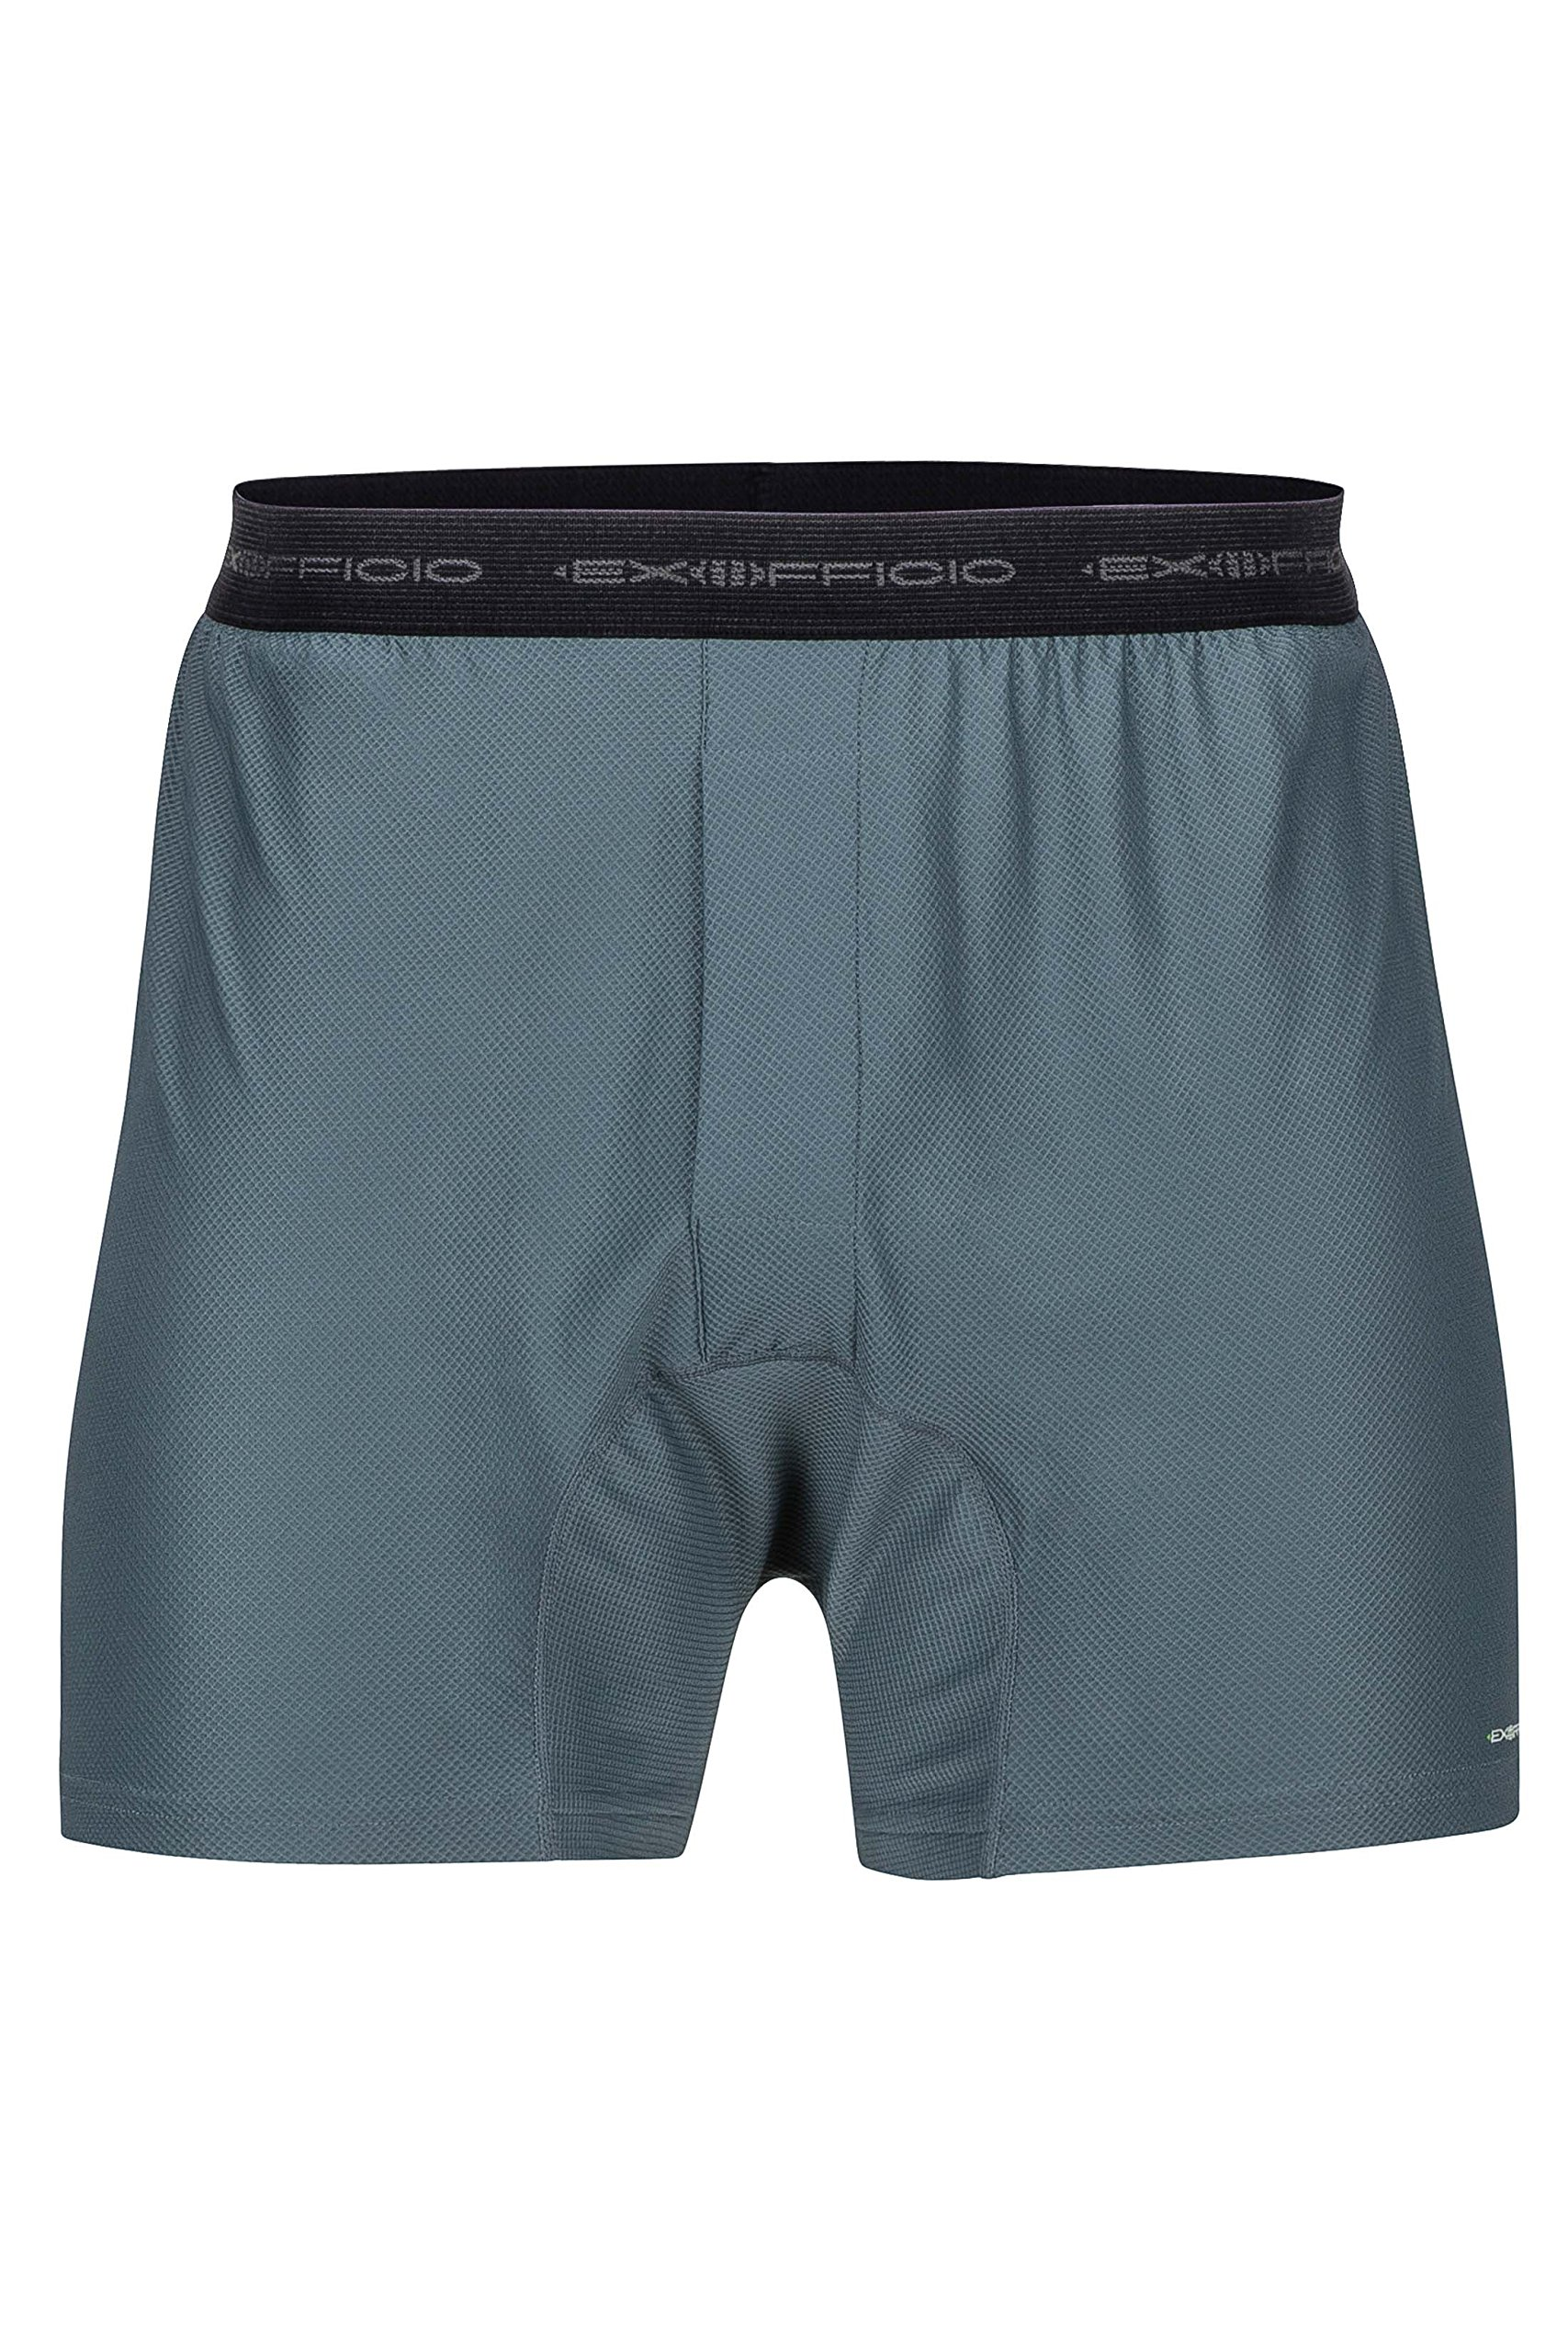 ExOfficio Men's Give-N-Go Boxer Shorts, 2-Pack, Charcoal, Large